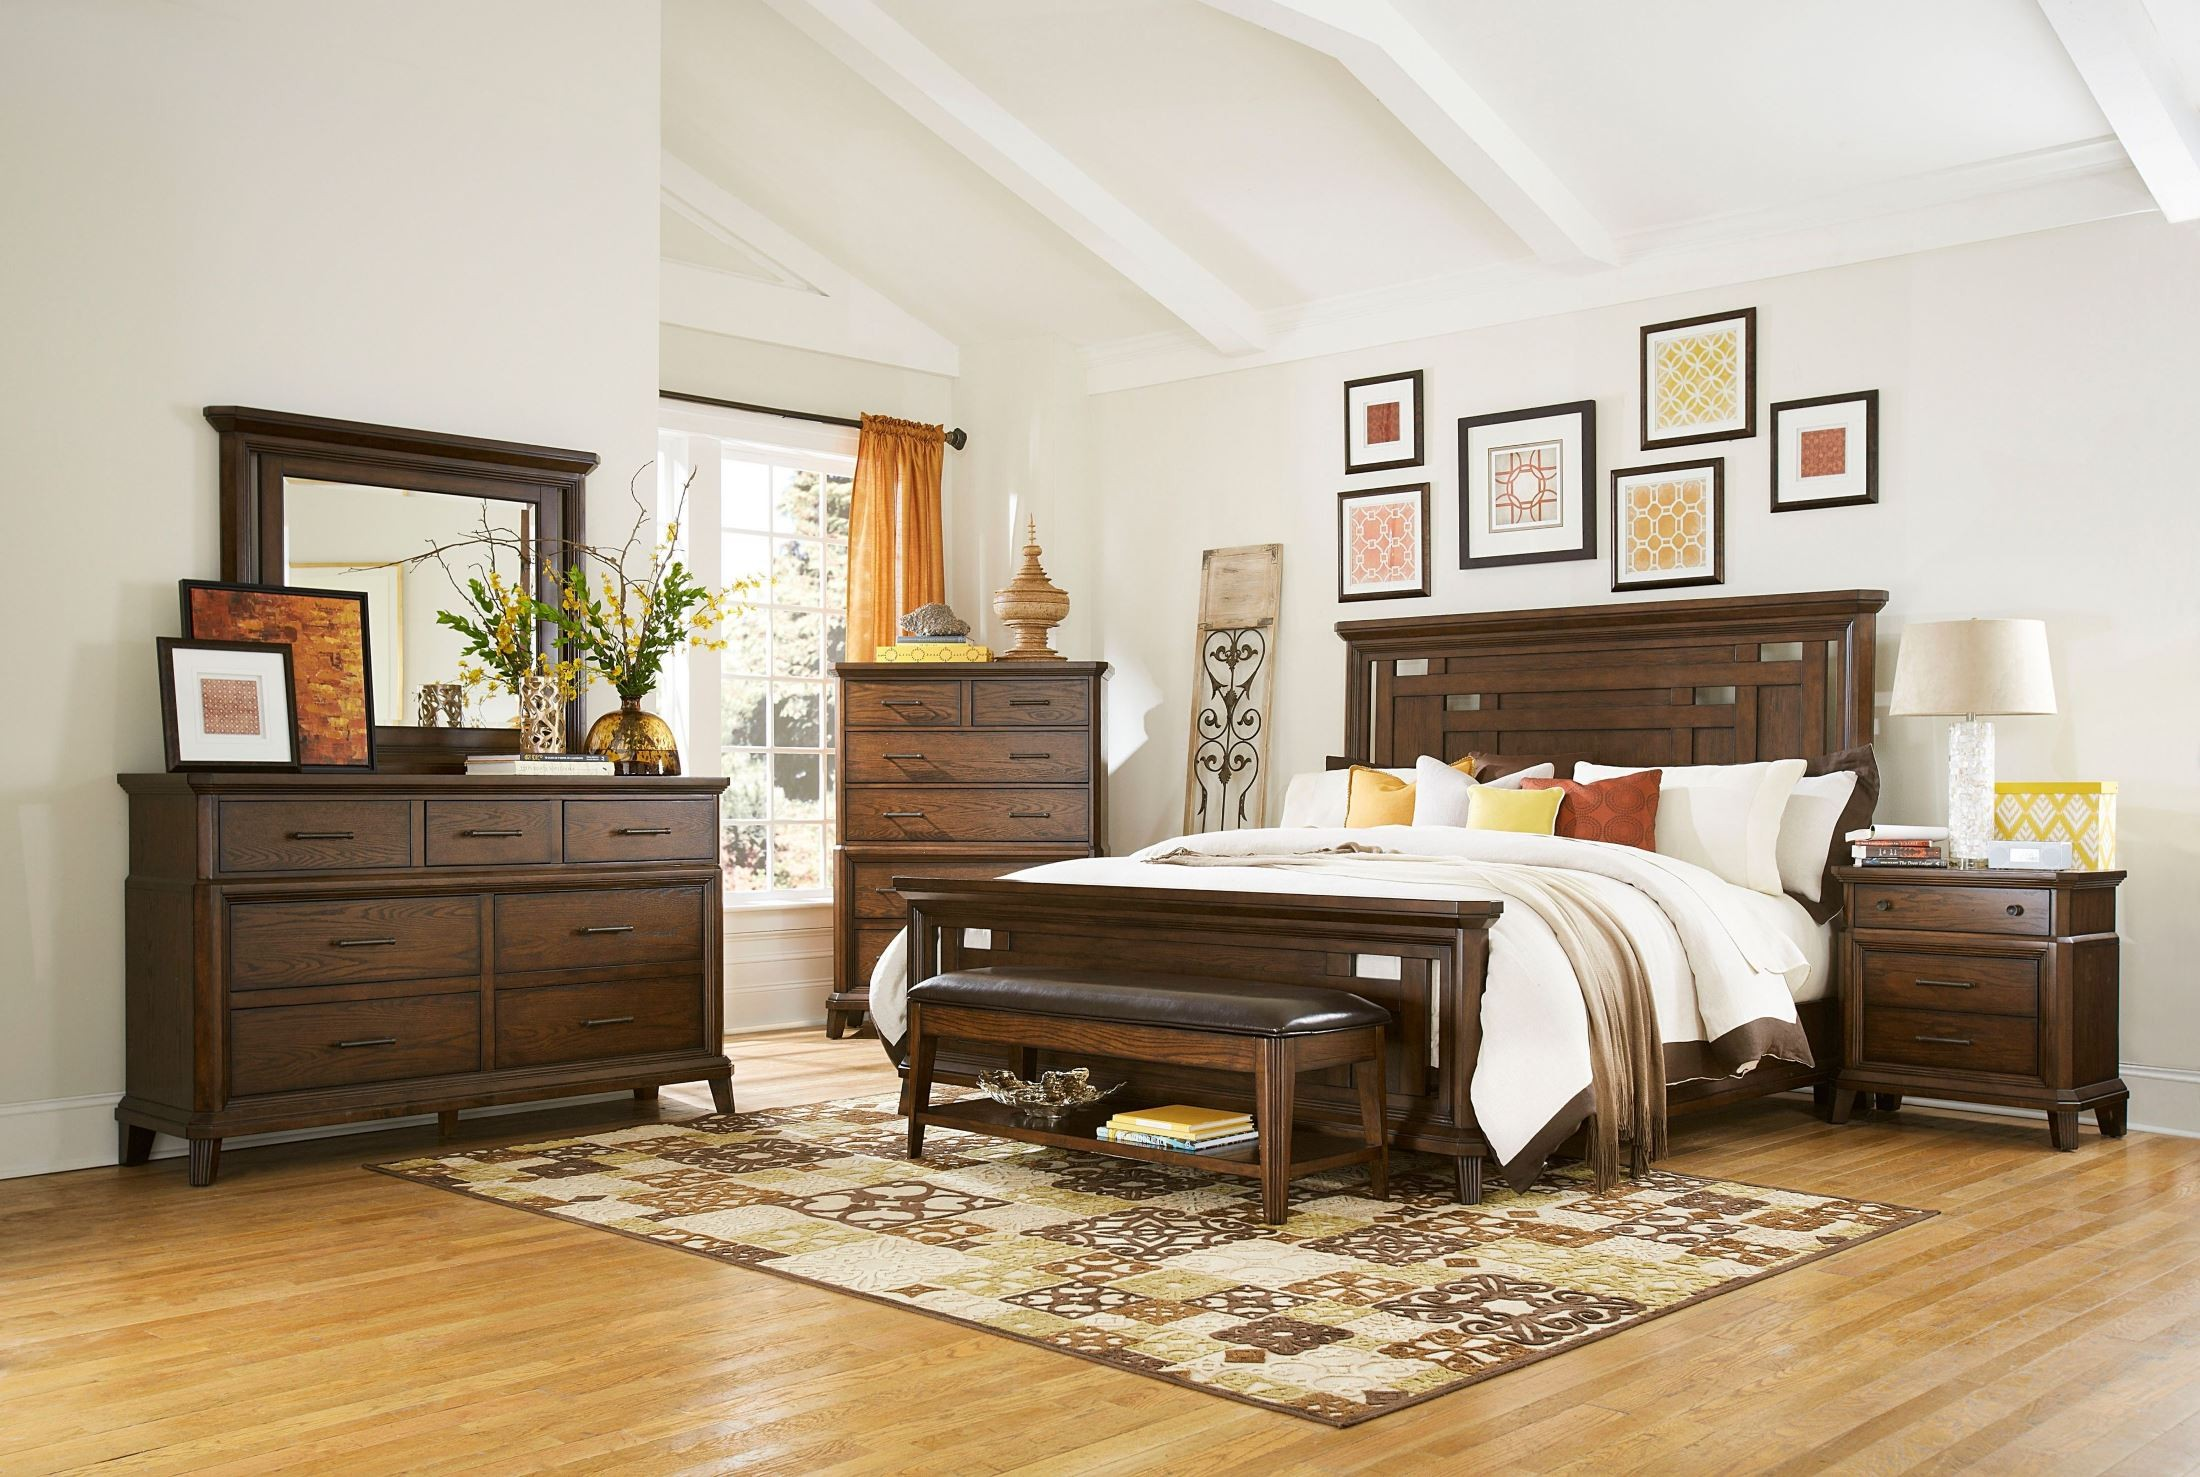 Estes Park Panel Bedroom Set from Broyhill 4364 250 251